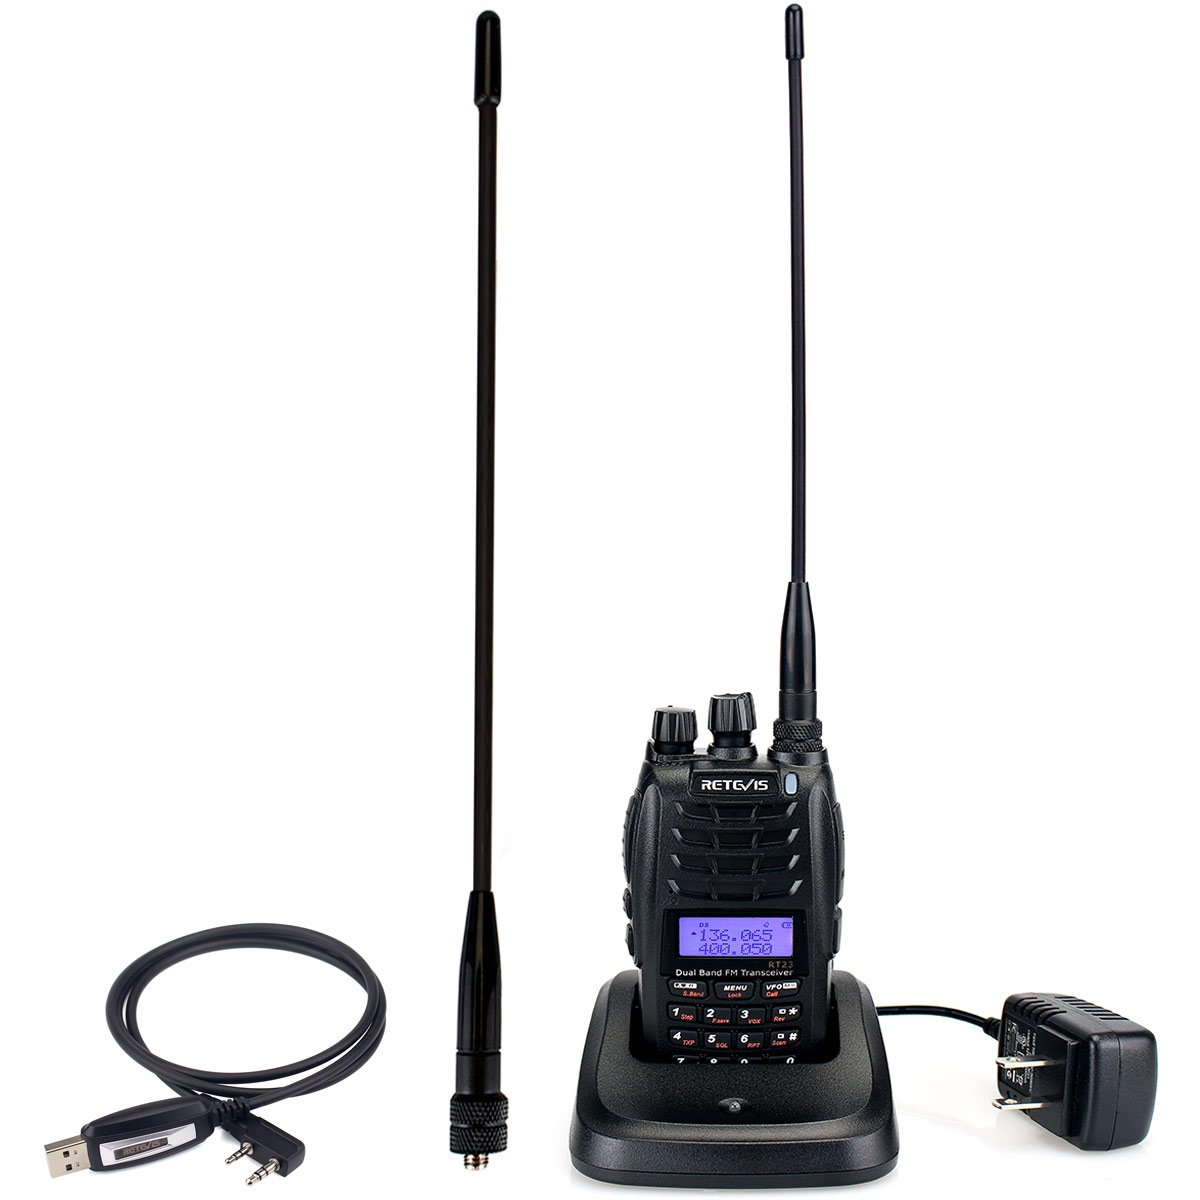 Retevis RT23 Walkie Talkie 5W Dual Band UHF/VHF 136-174/400-480Mhz Dual PTT Dual Receive 128CH 1750Hz DTMF FM VFO/MR/CH 1600mAh Two Way Radio(1 Pack)